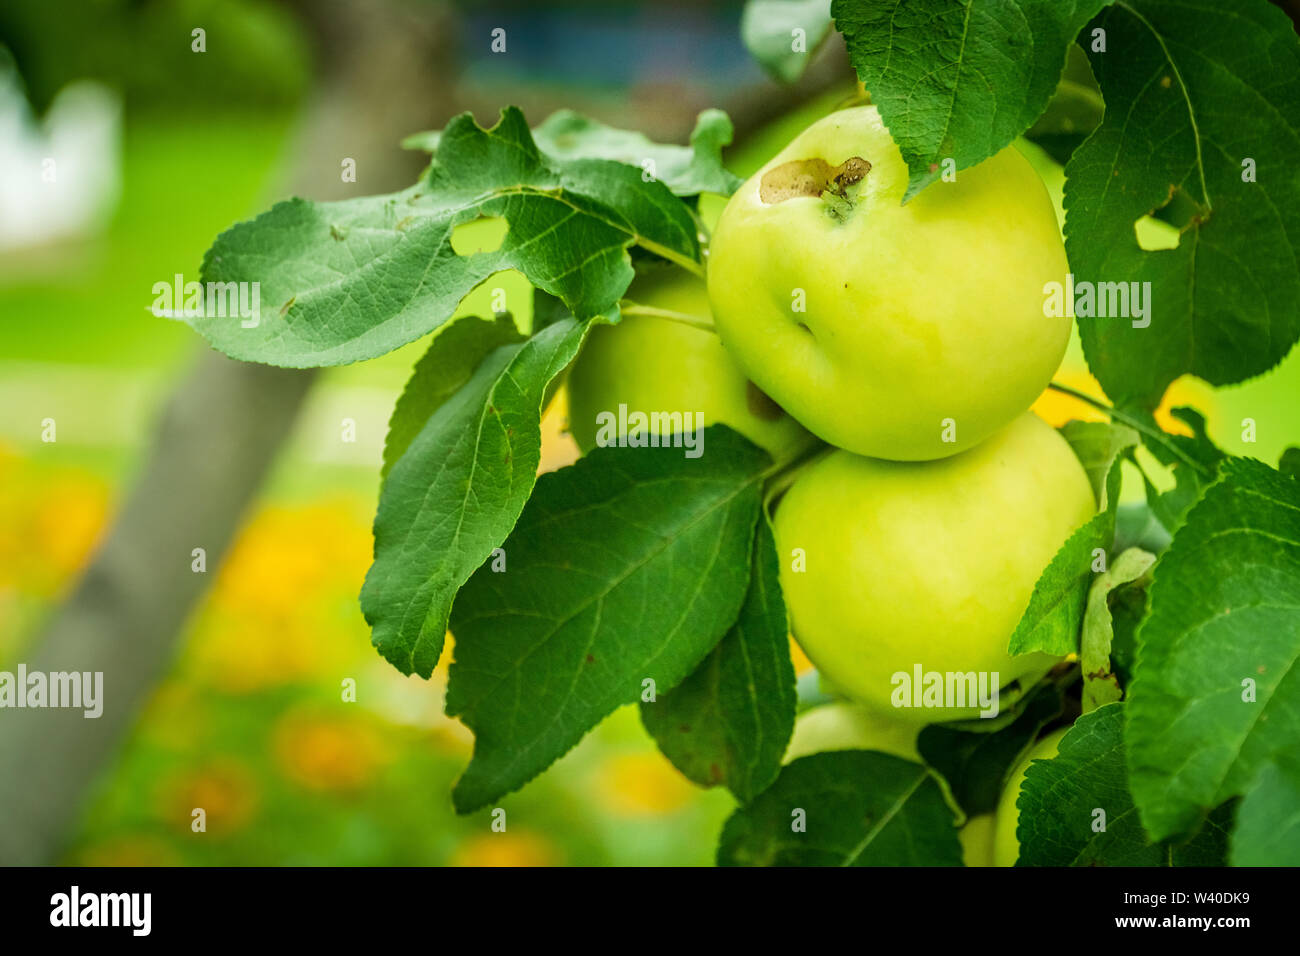 Bunch of green apples on a branch - Stock Image